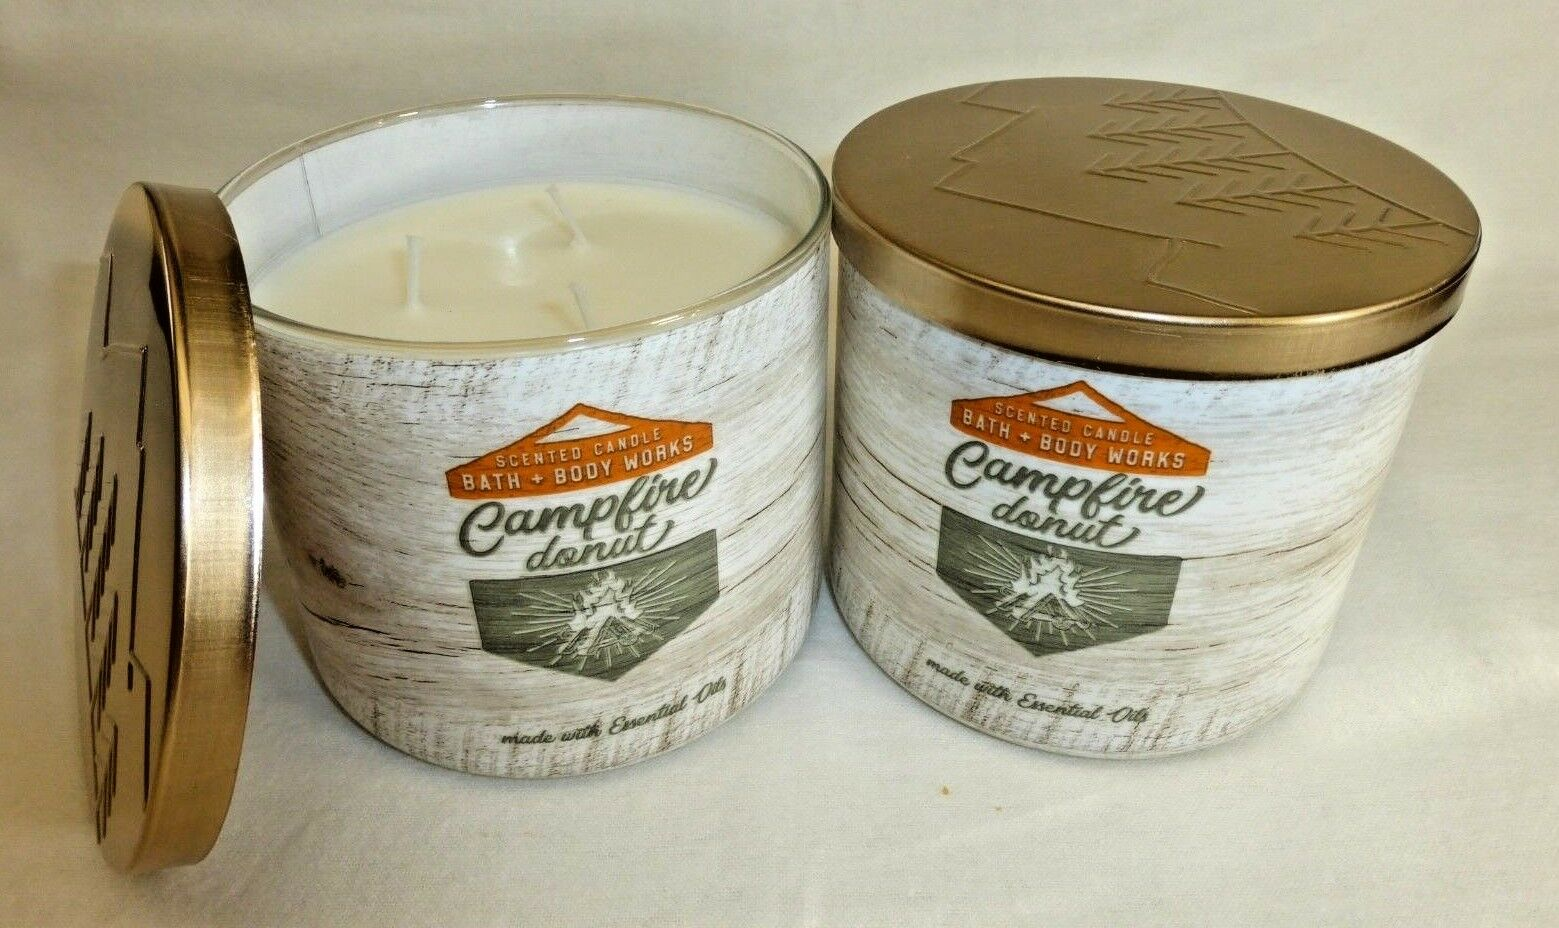 2 Campfire Donut Scented Candle Bath & Body Works 14.5 Oz